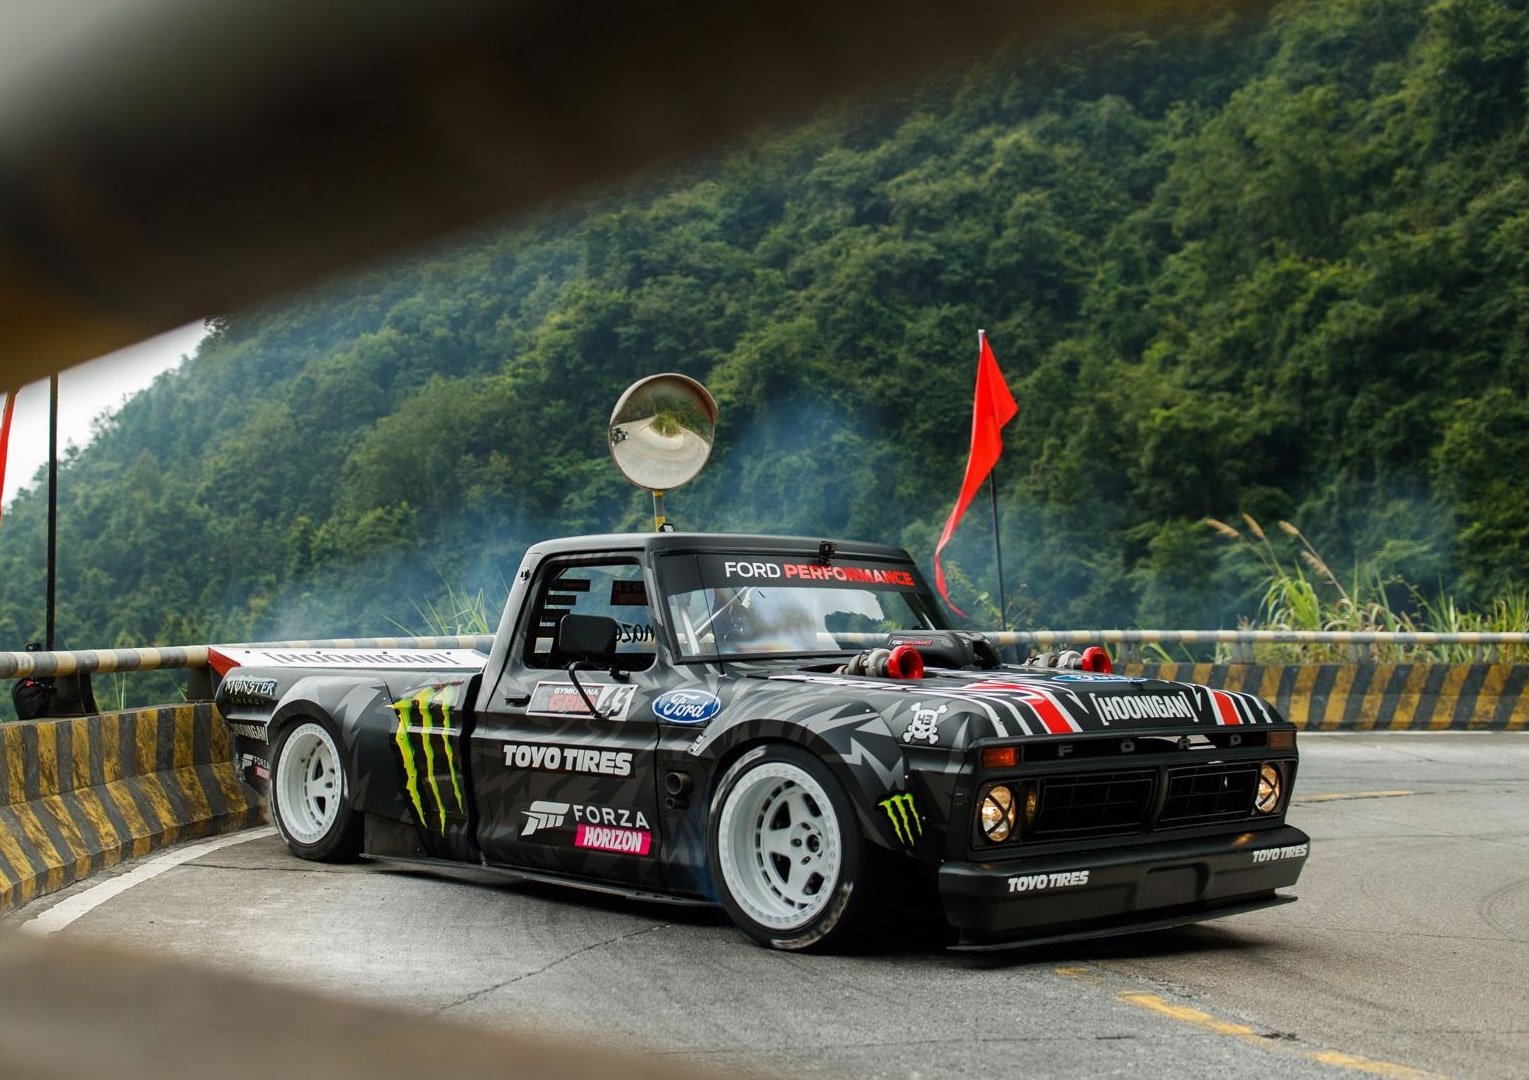 Ken Block China Dangeroud Road Tianmen Mountain Climbkhana 2